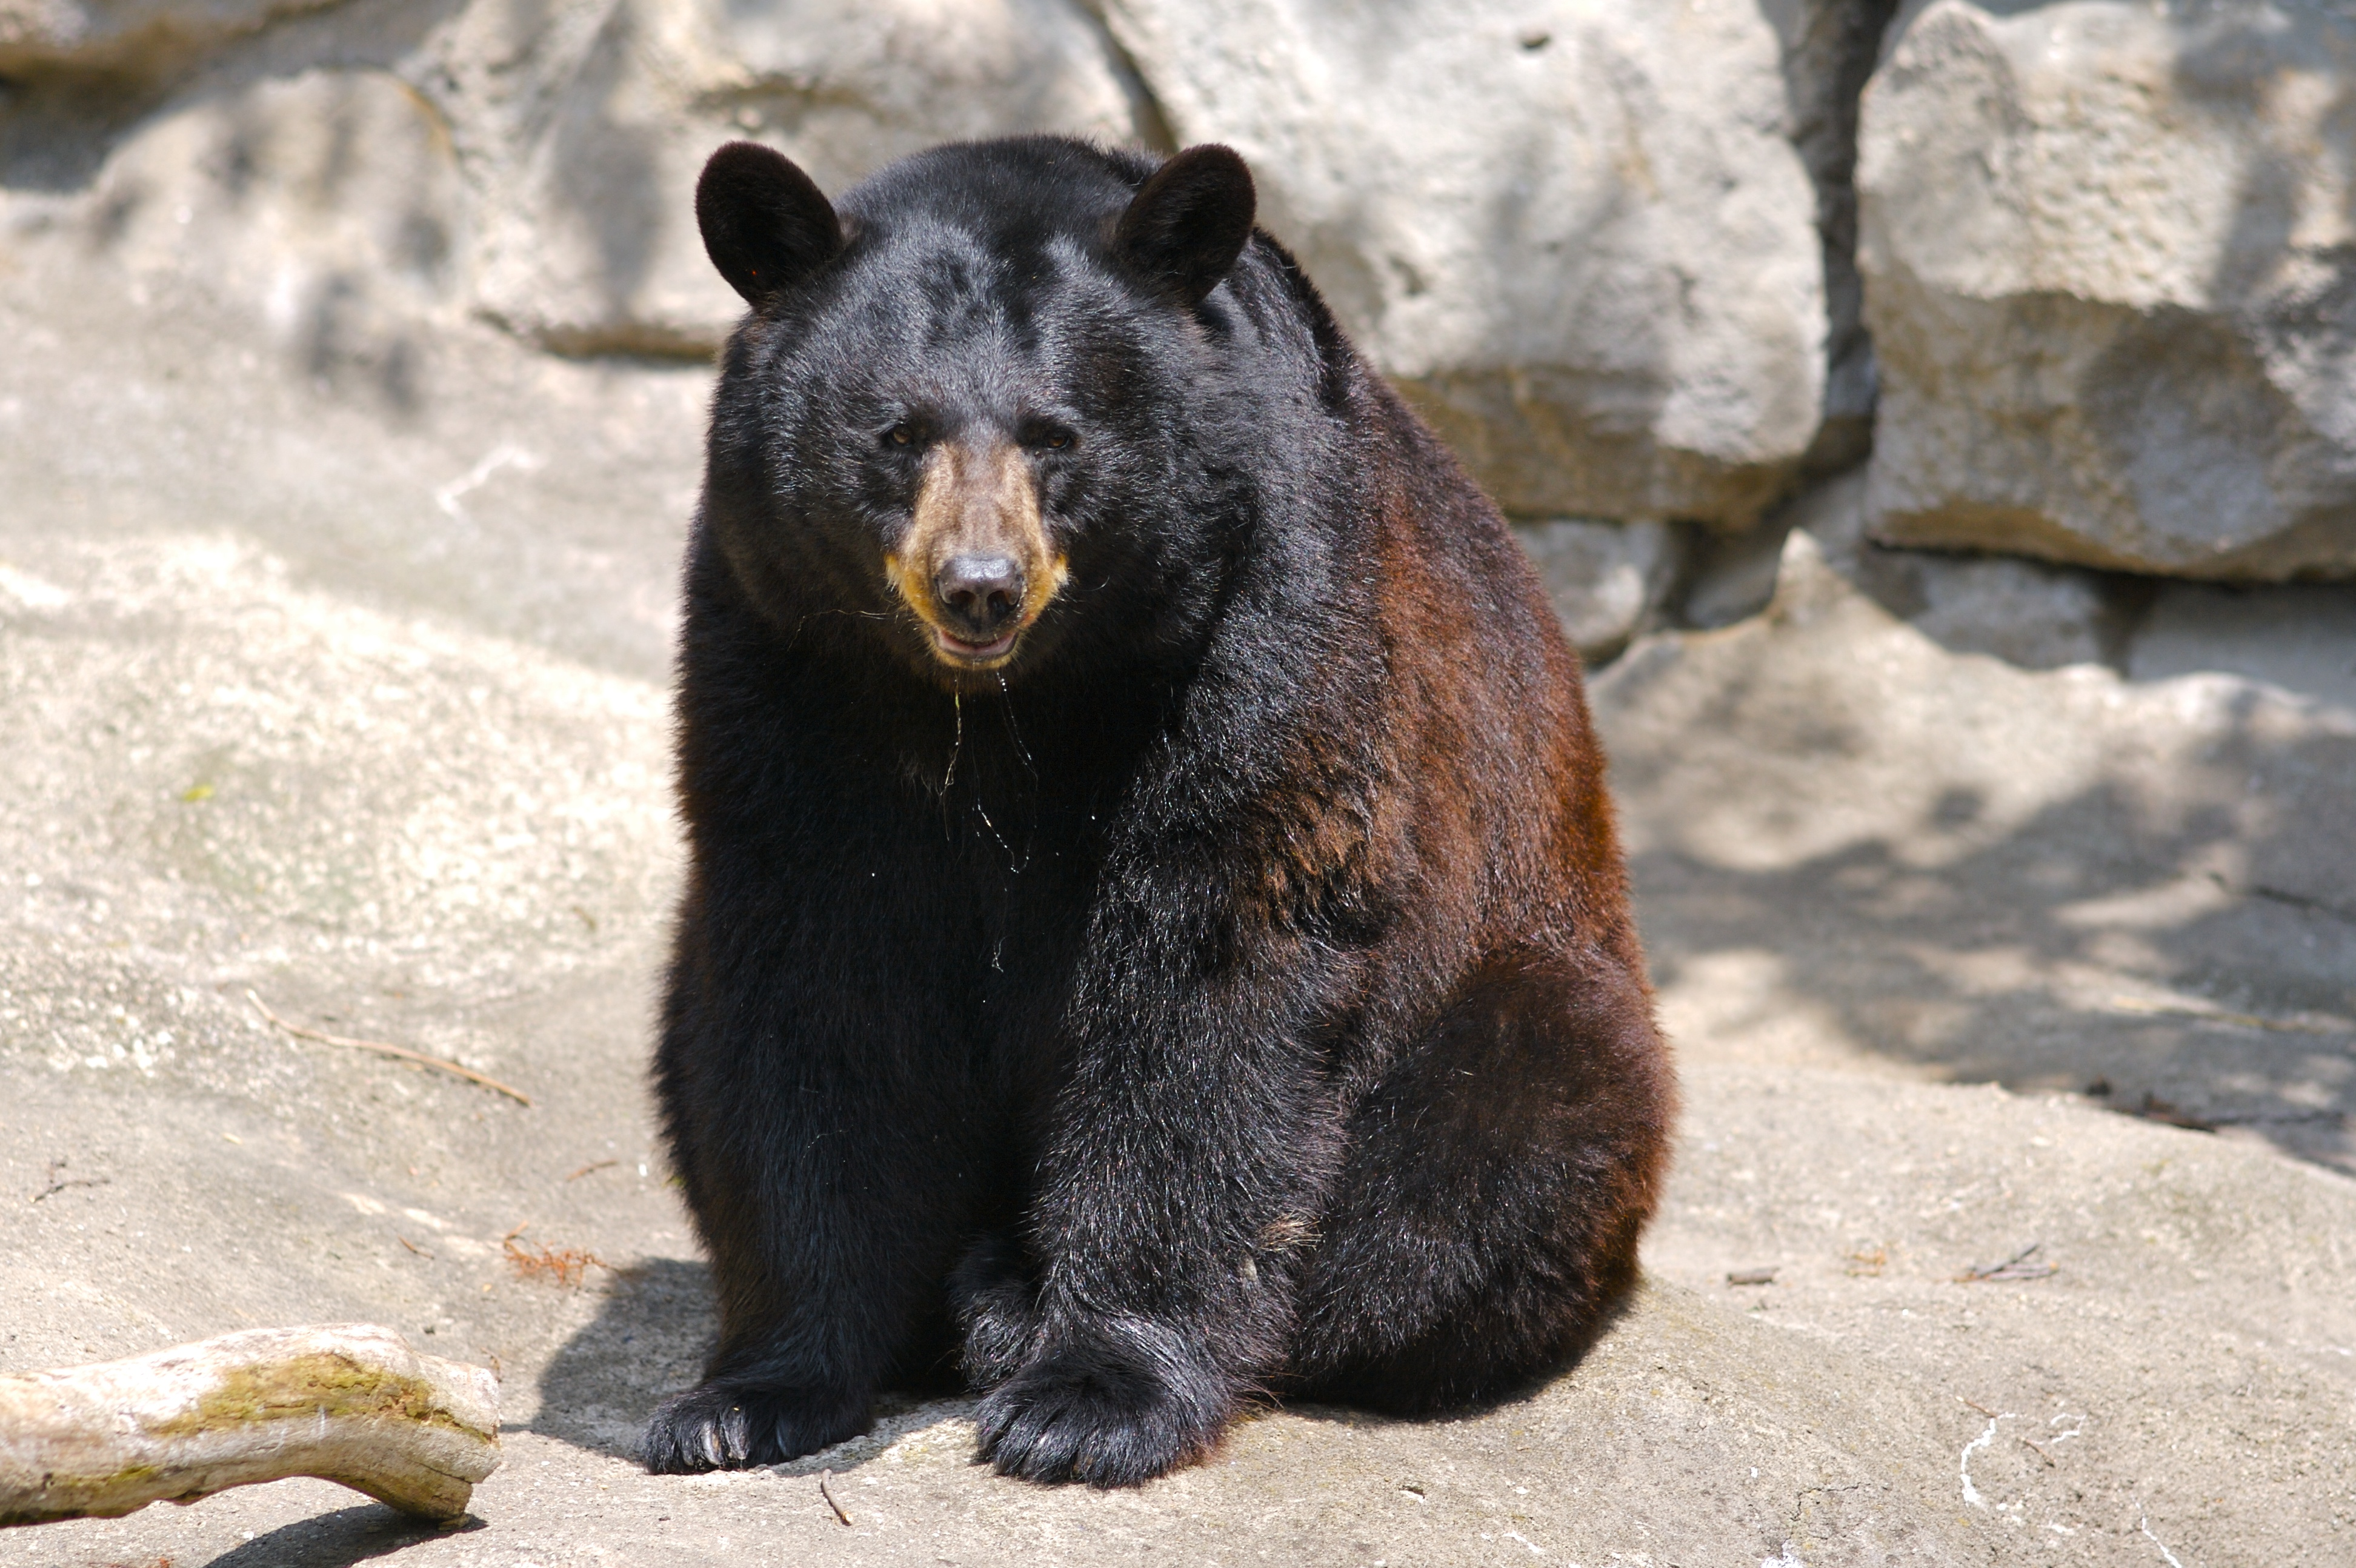 bear and american black bears Sources, but also became more aggressive than the black bear, a behavioural   cal differences between black bears and the north american brown/grizzly bear.